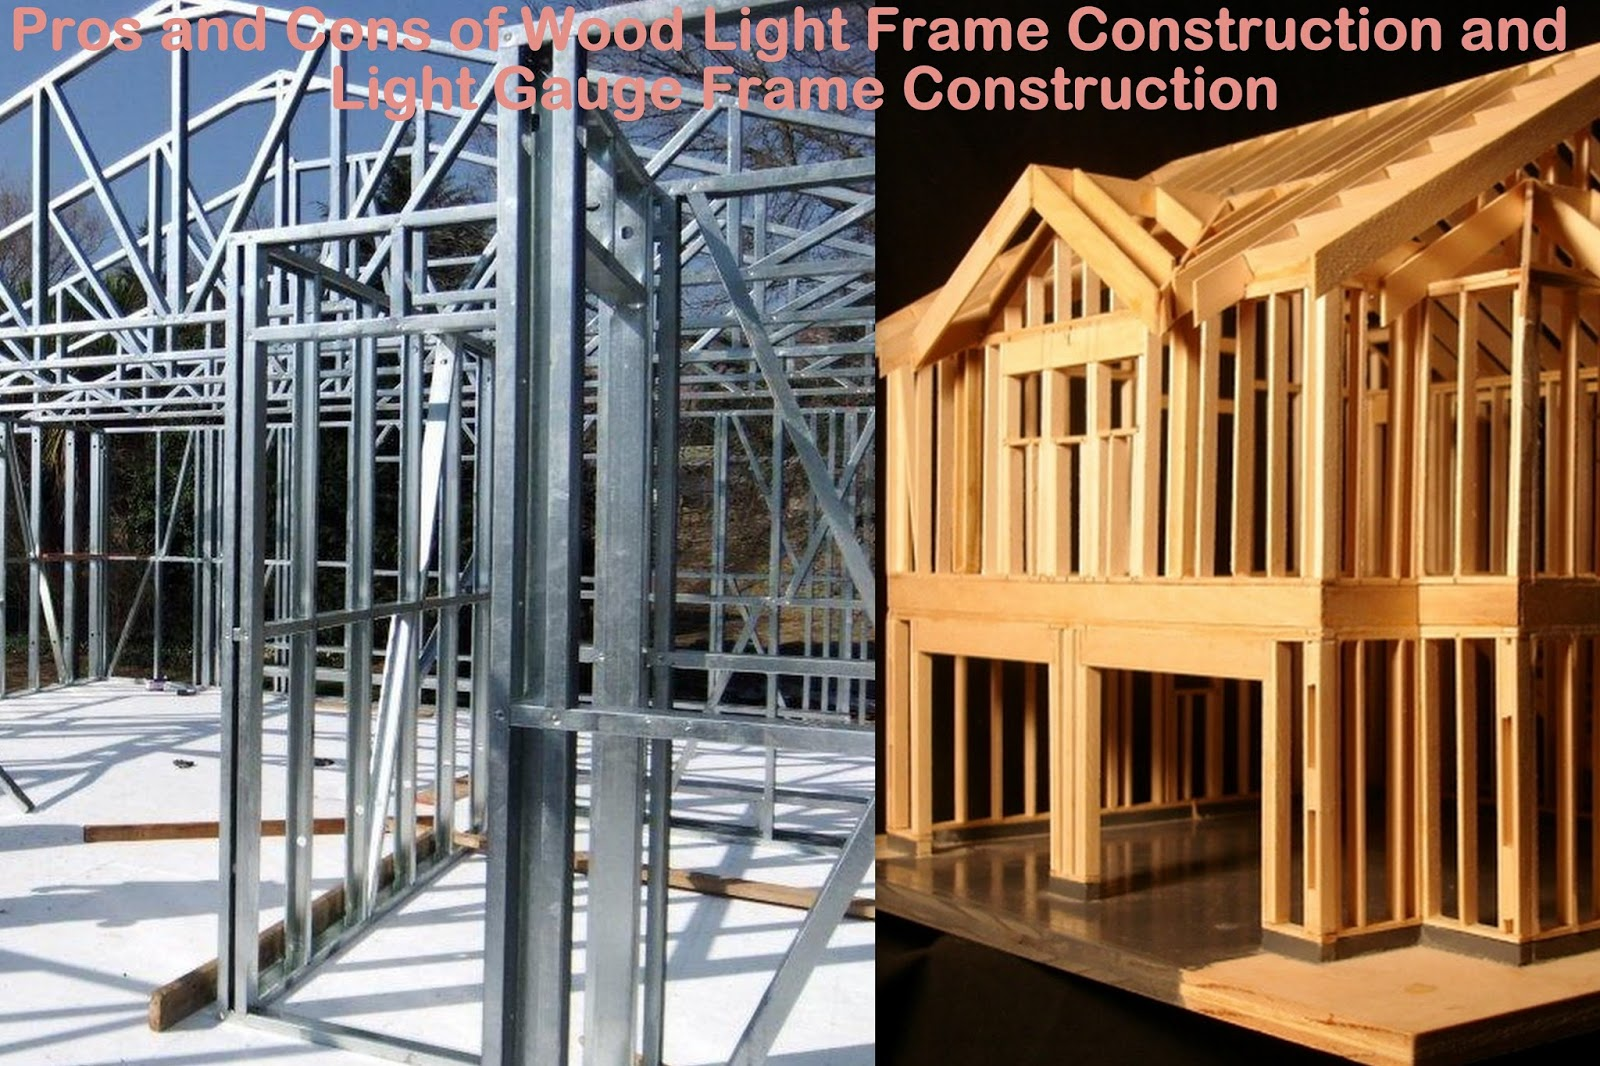 Pros and Cons Of Wood Light Frame Construction And Light Gauge Steel ...